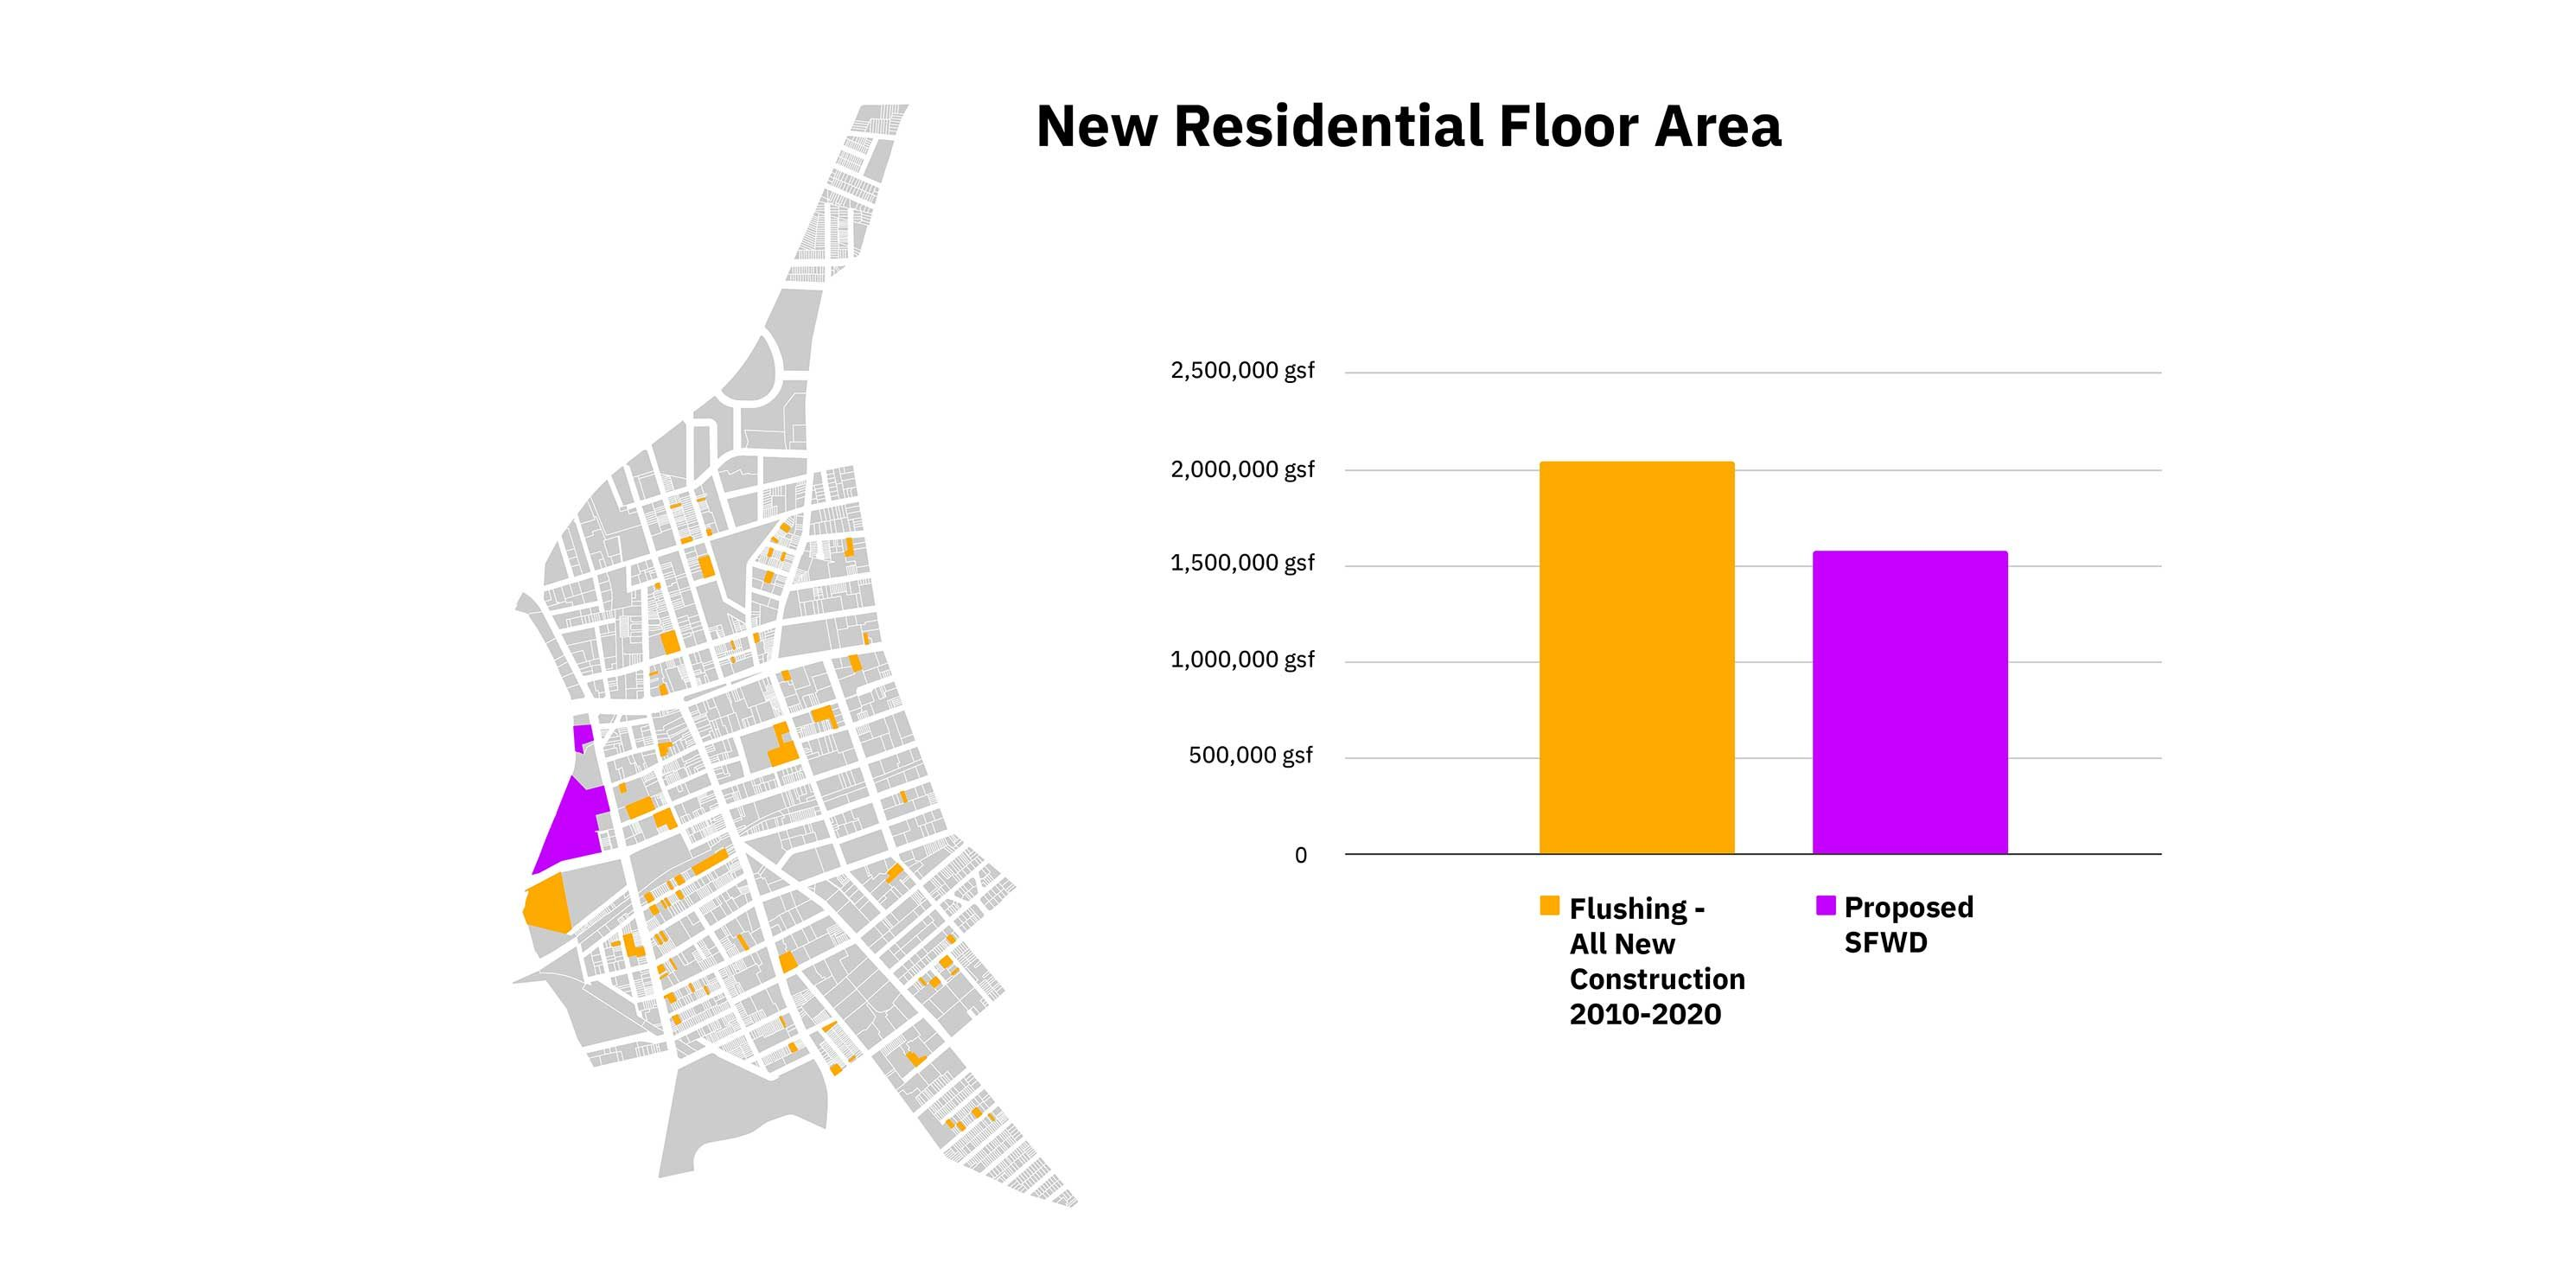 graphic of new residential floor area in the Special Waterfront Flushing District versus all of Flushing, Queens